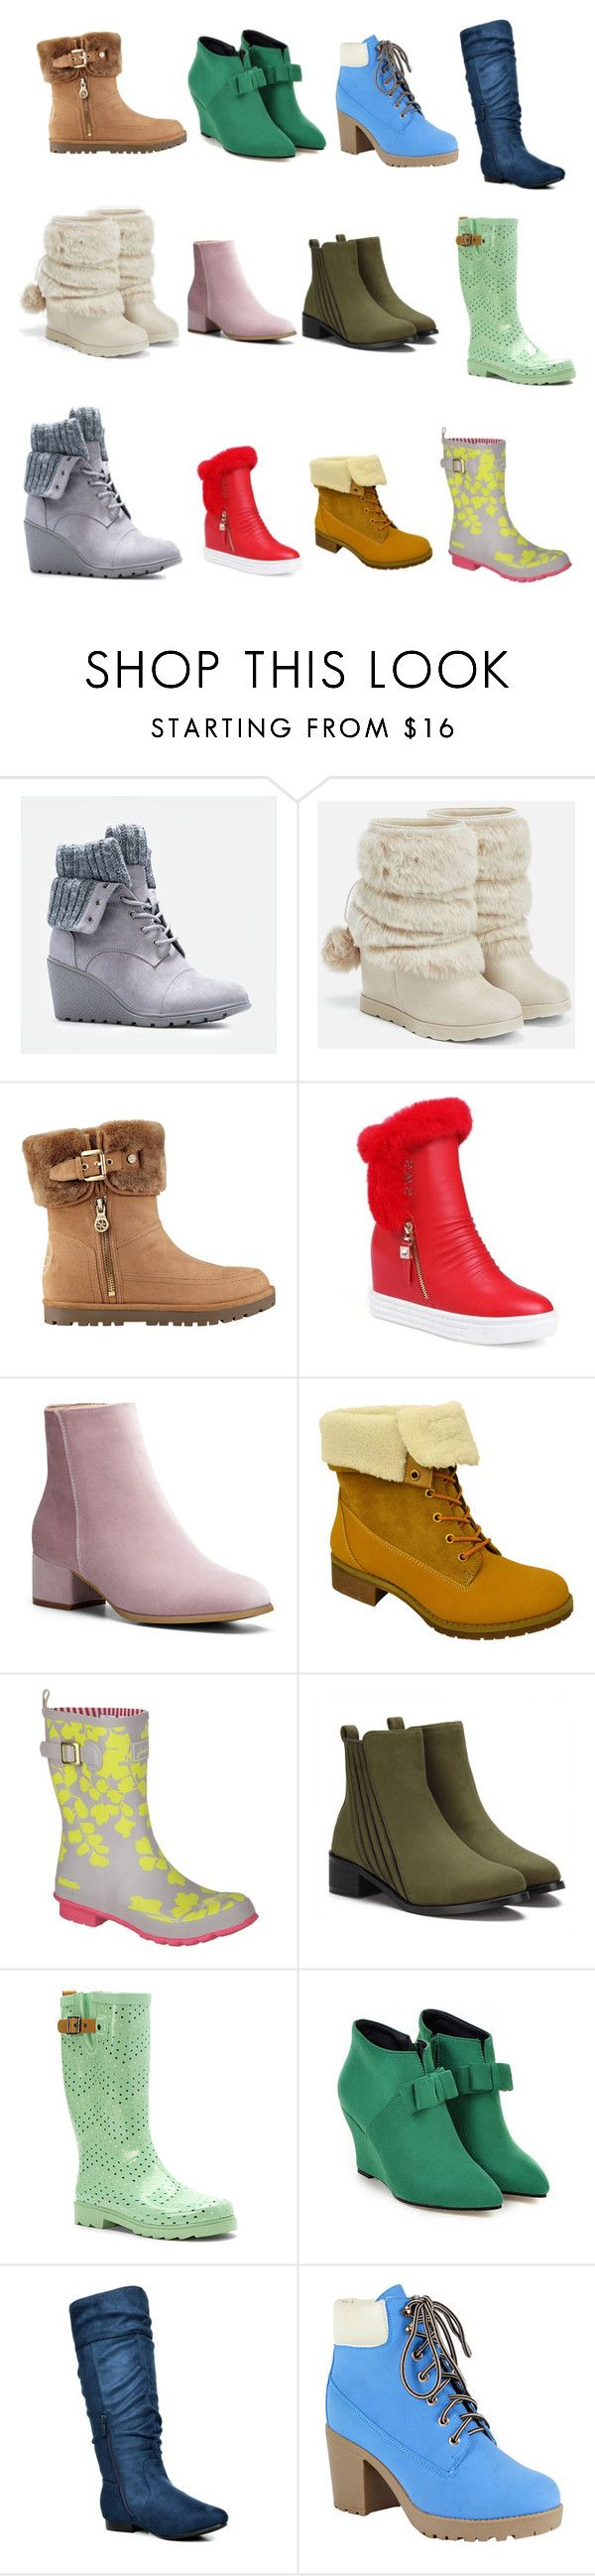 """Boots for Betty 4"" by bwilliamson102976 ❤ liked on Polyvore featuring JustFab, GUESS, Twisted, Joules, Chooka, BLVD Supply and Reneeze"